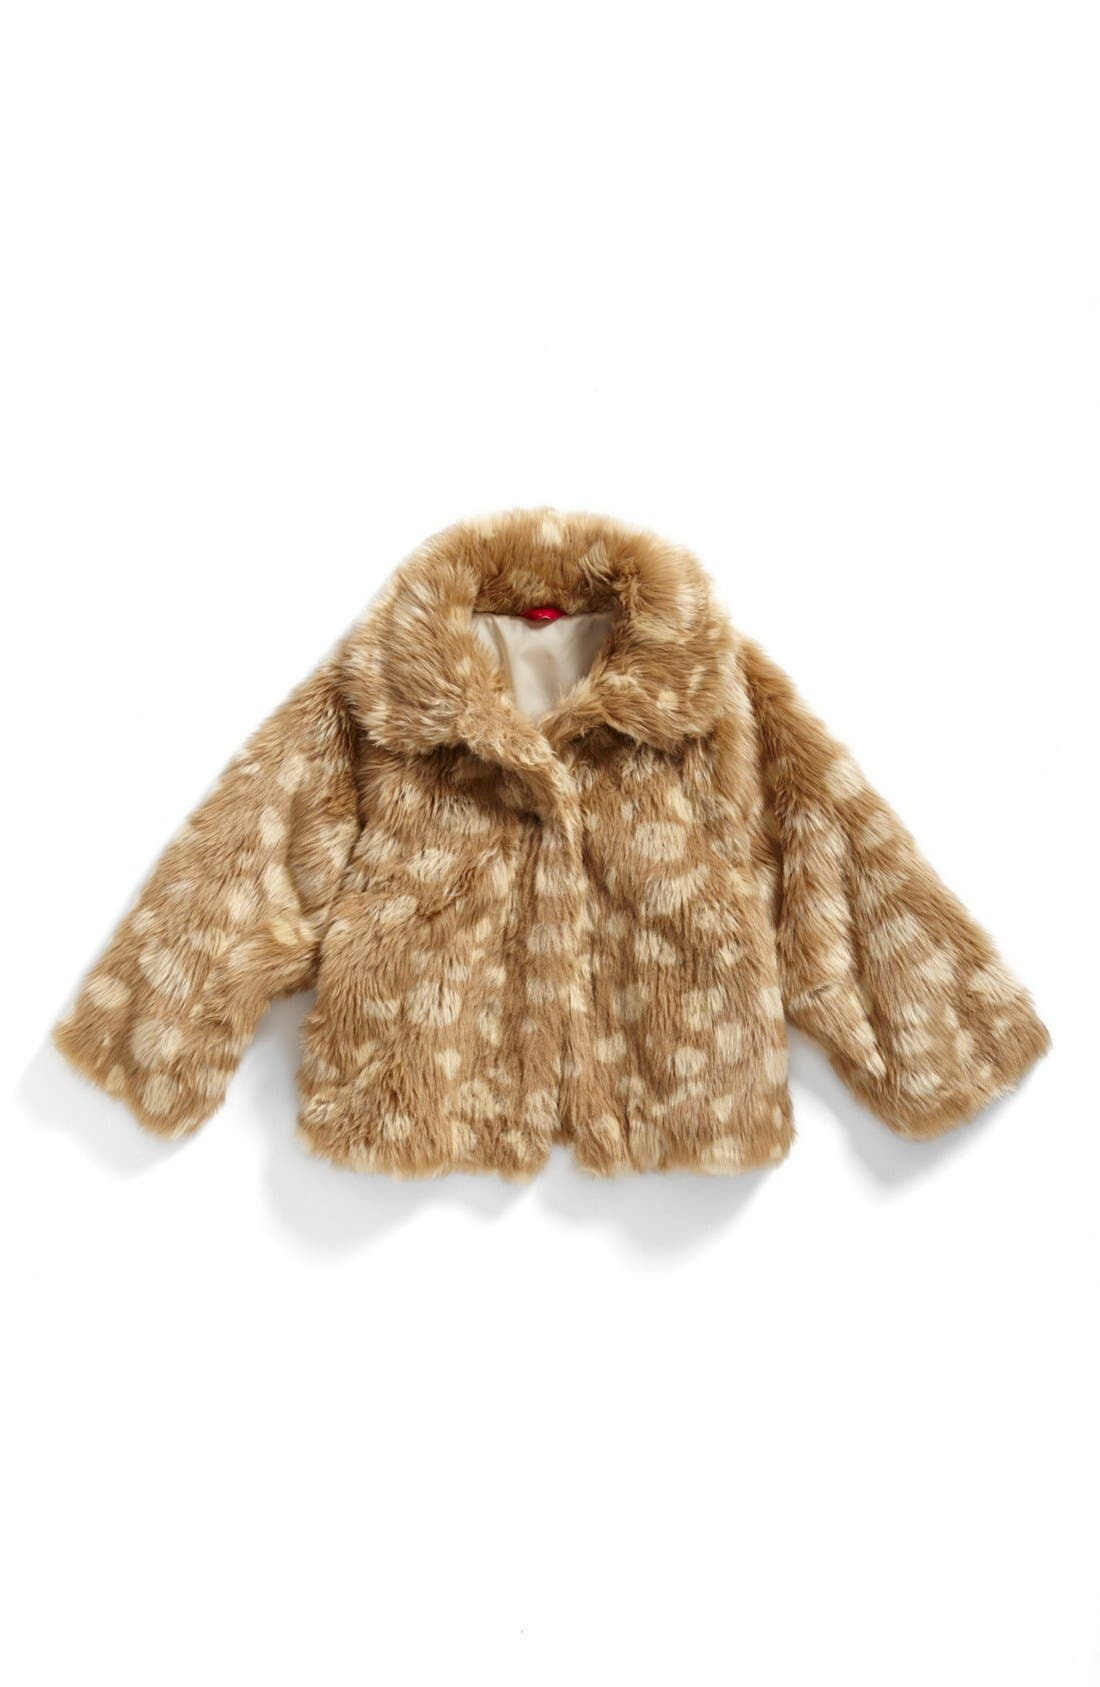 Alternate Image 1 Selected - Ruby & Bloom 'Mia' Faux Fur Coat (Big Girls)